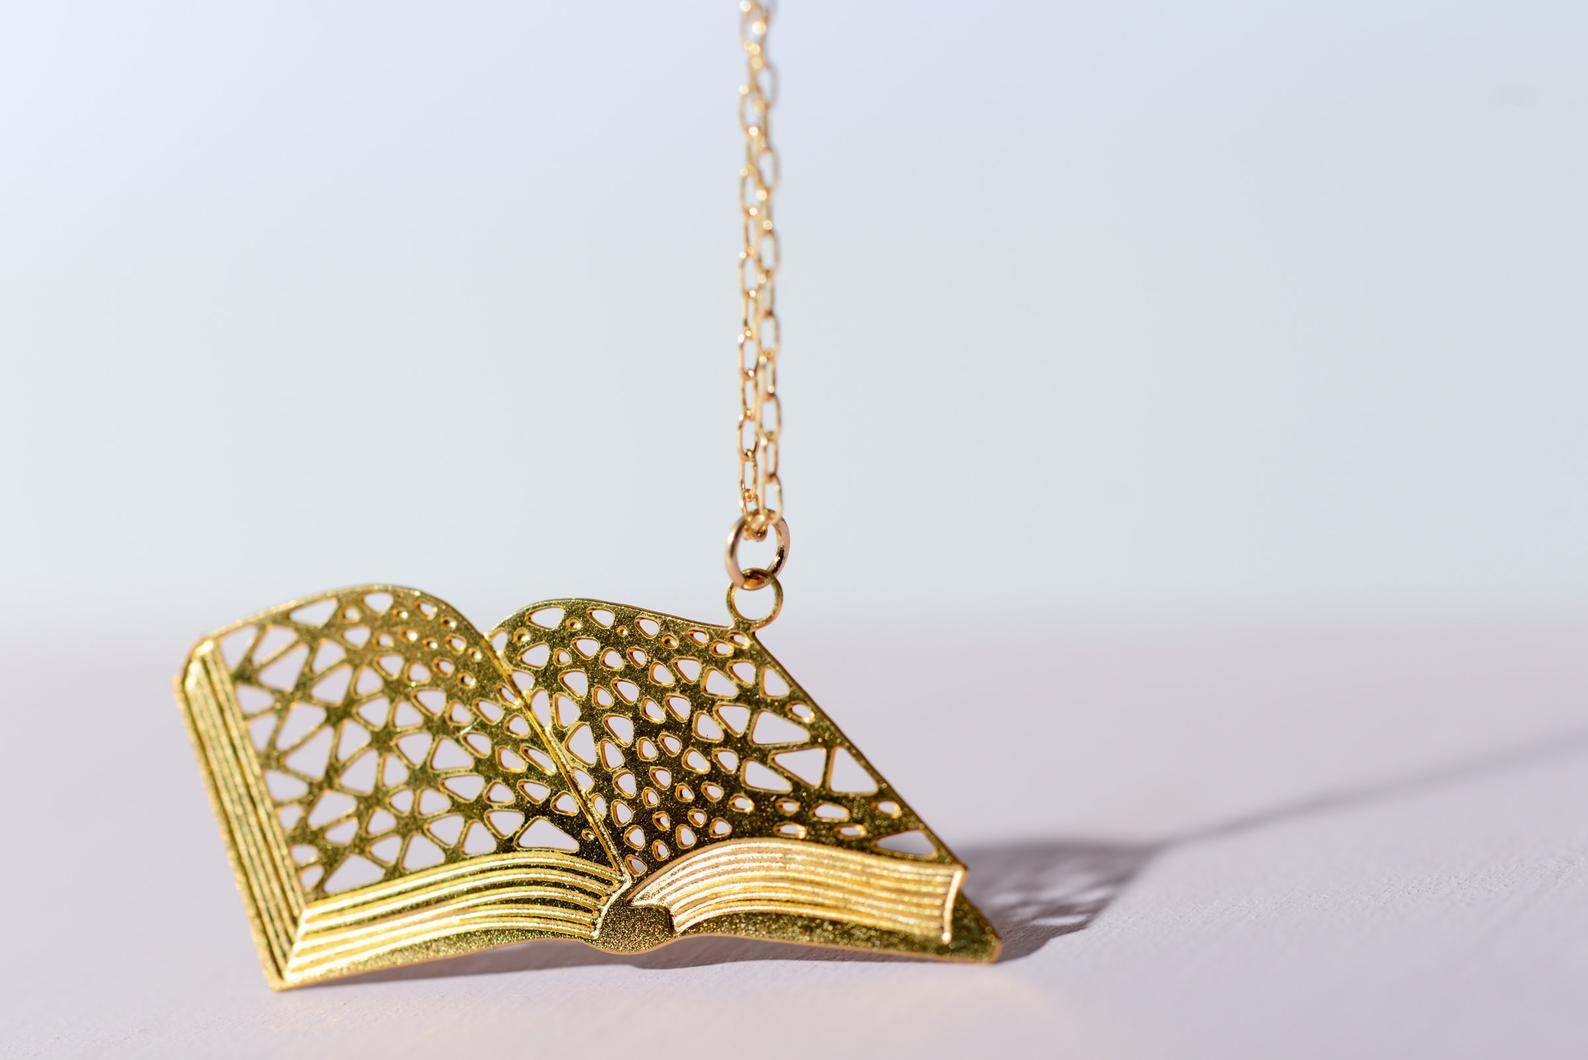 Geometric book necklace for bookworms